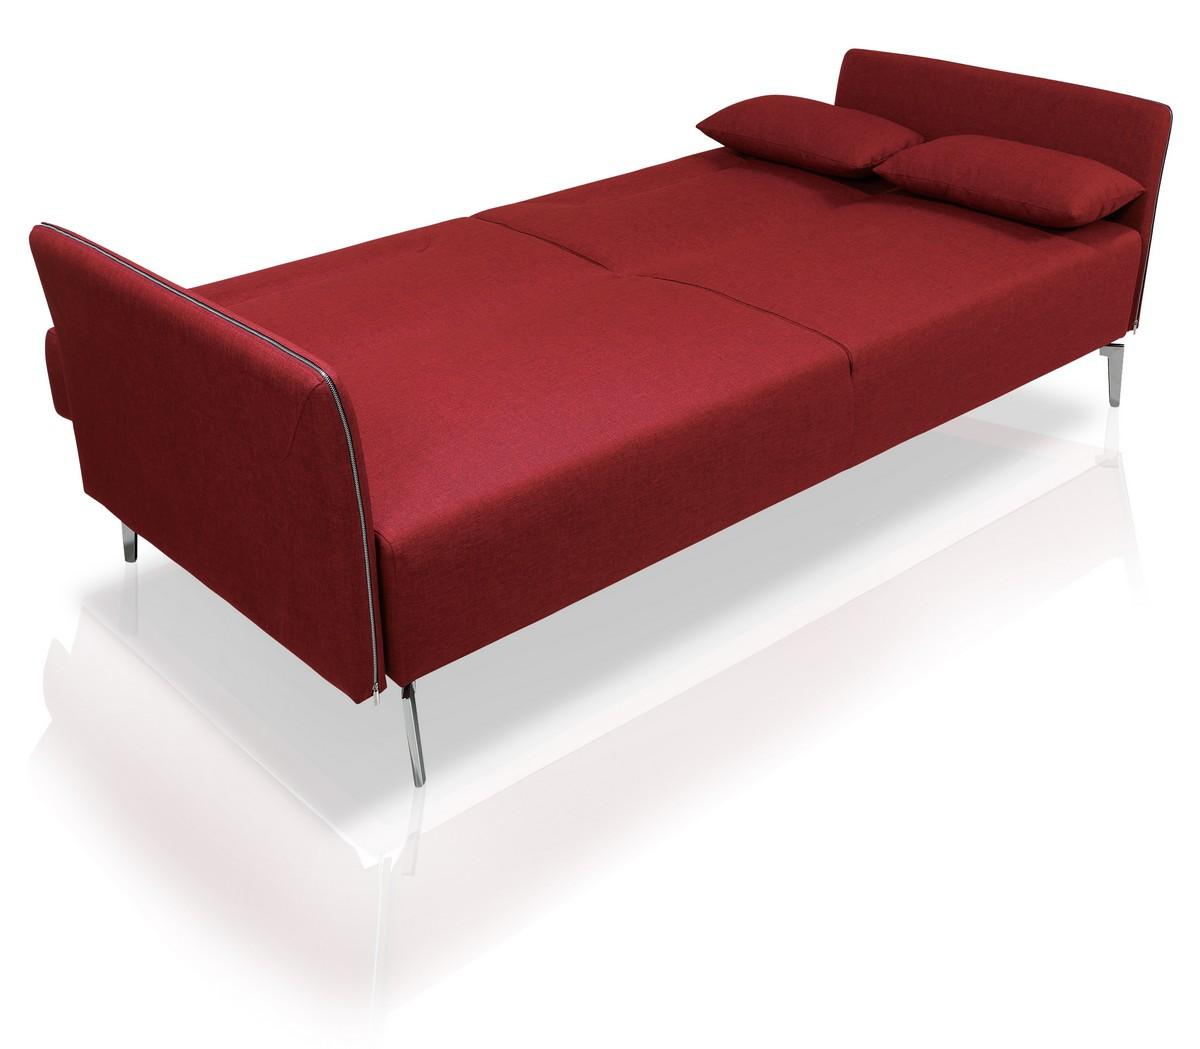 superb contemporary red fabric single convertible sofa bed birmingham